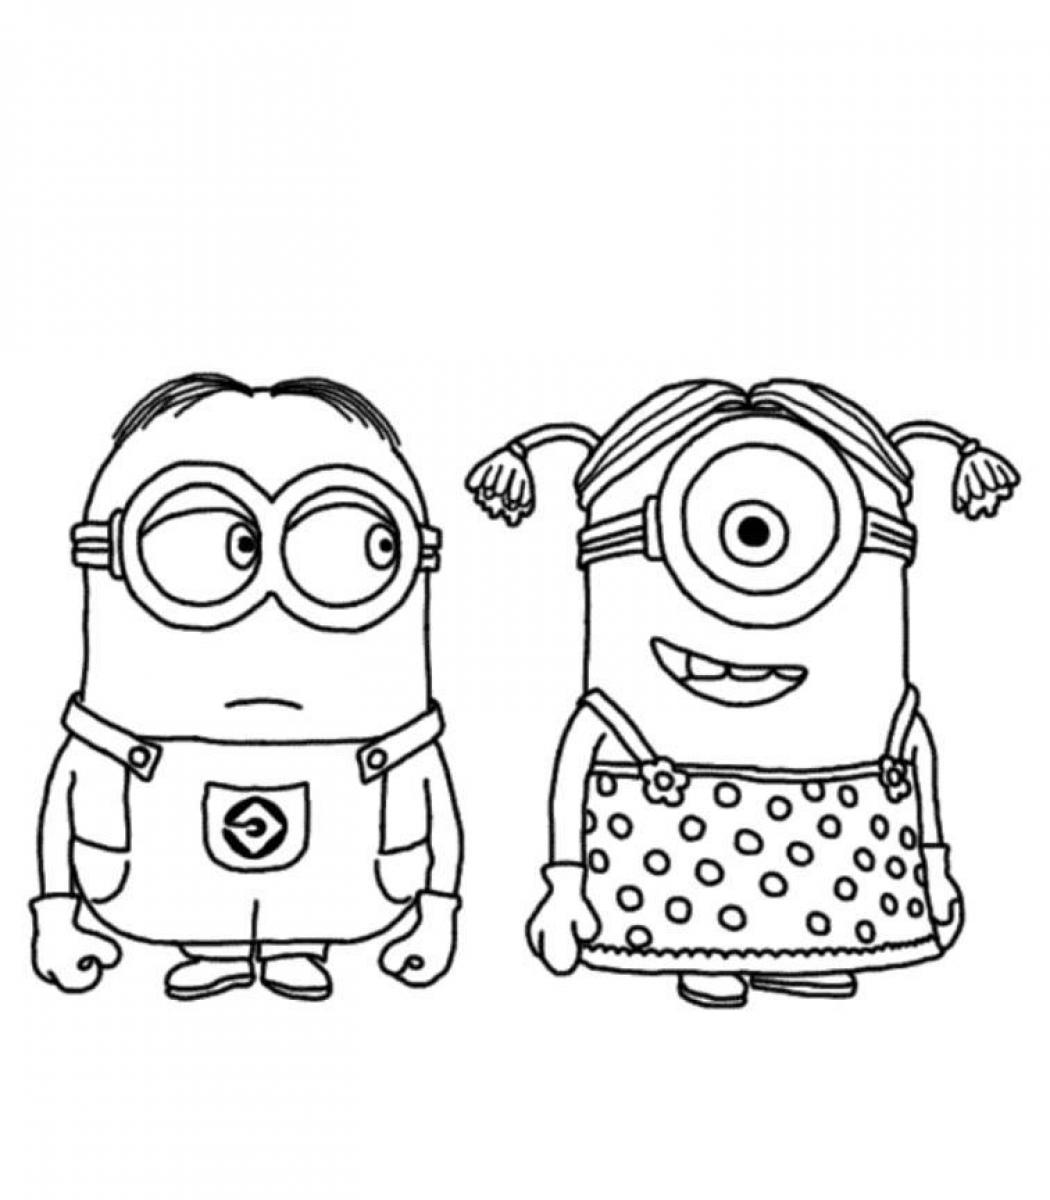 coloring pages minions angen - photo#42